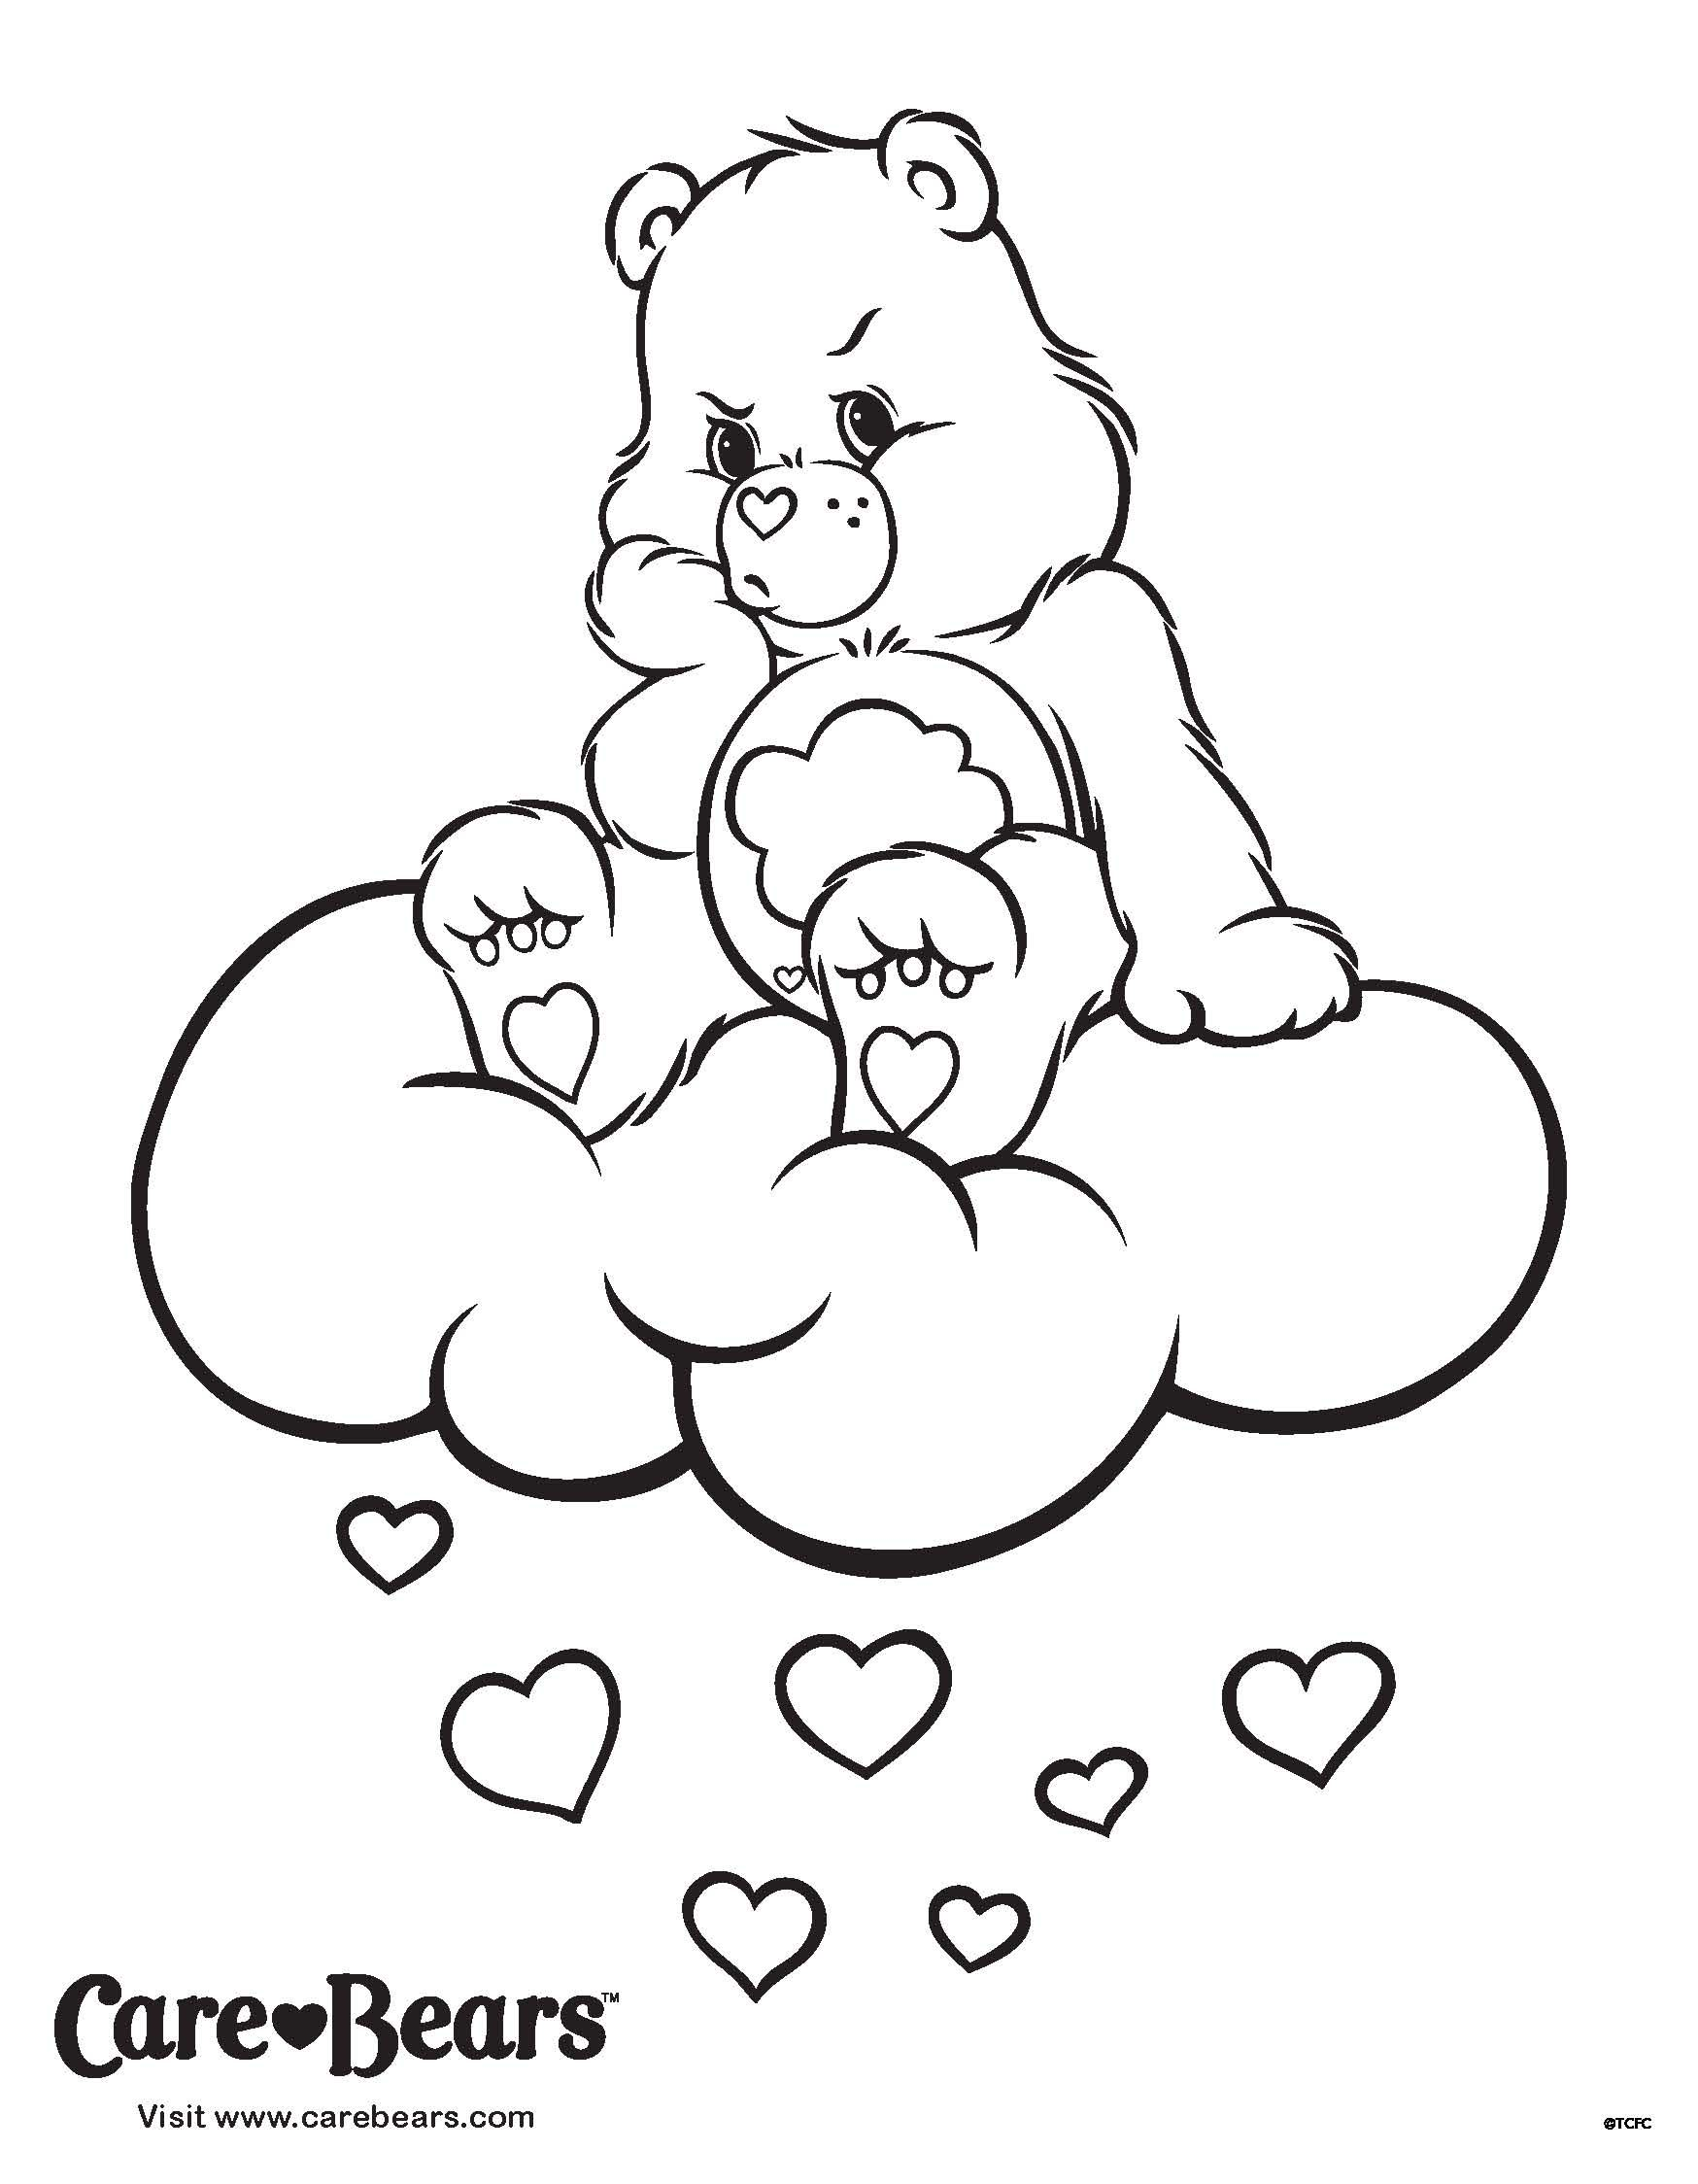 Care Bears Coloring Sheet Don T Let The Grumpies Get You Bear